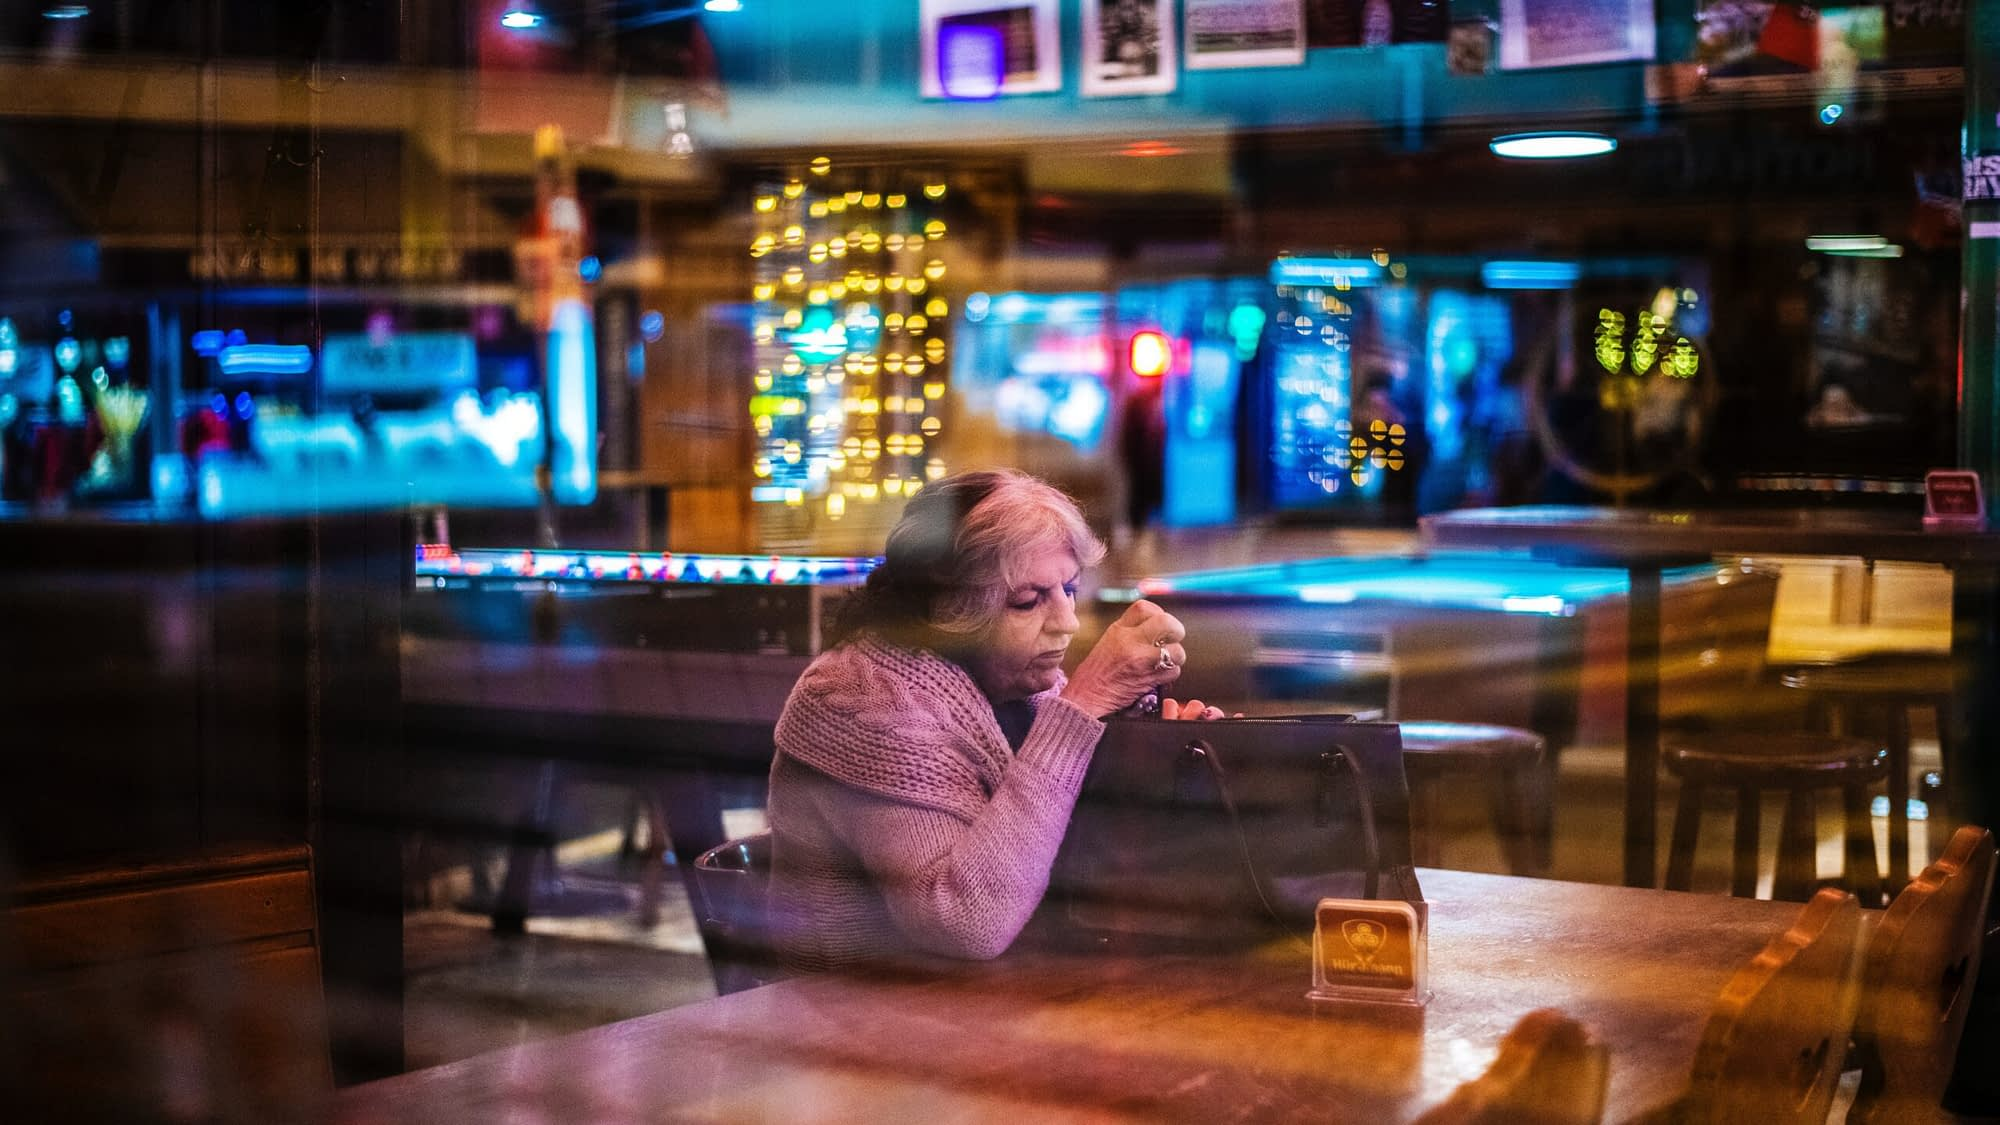 woman sitting alone at a bar